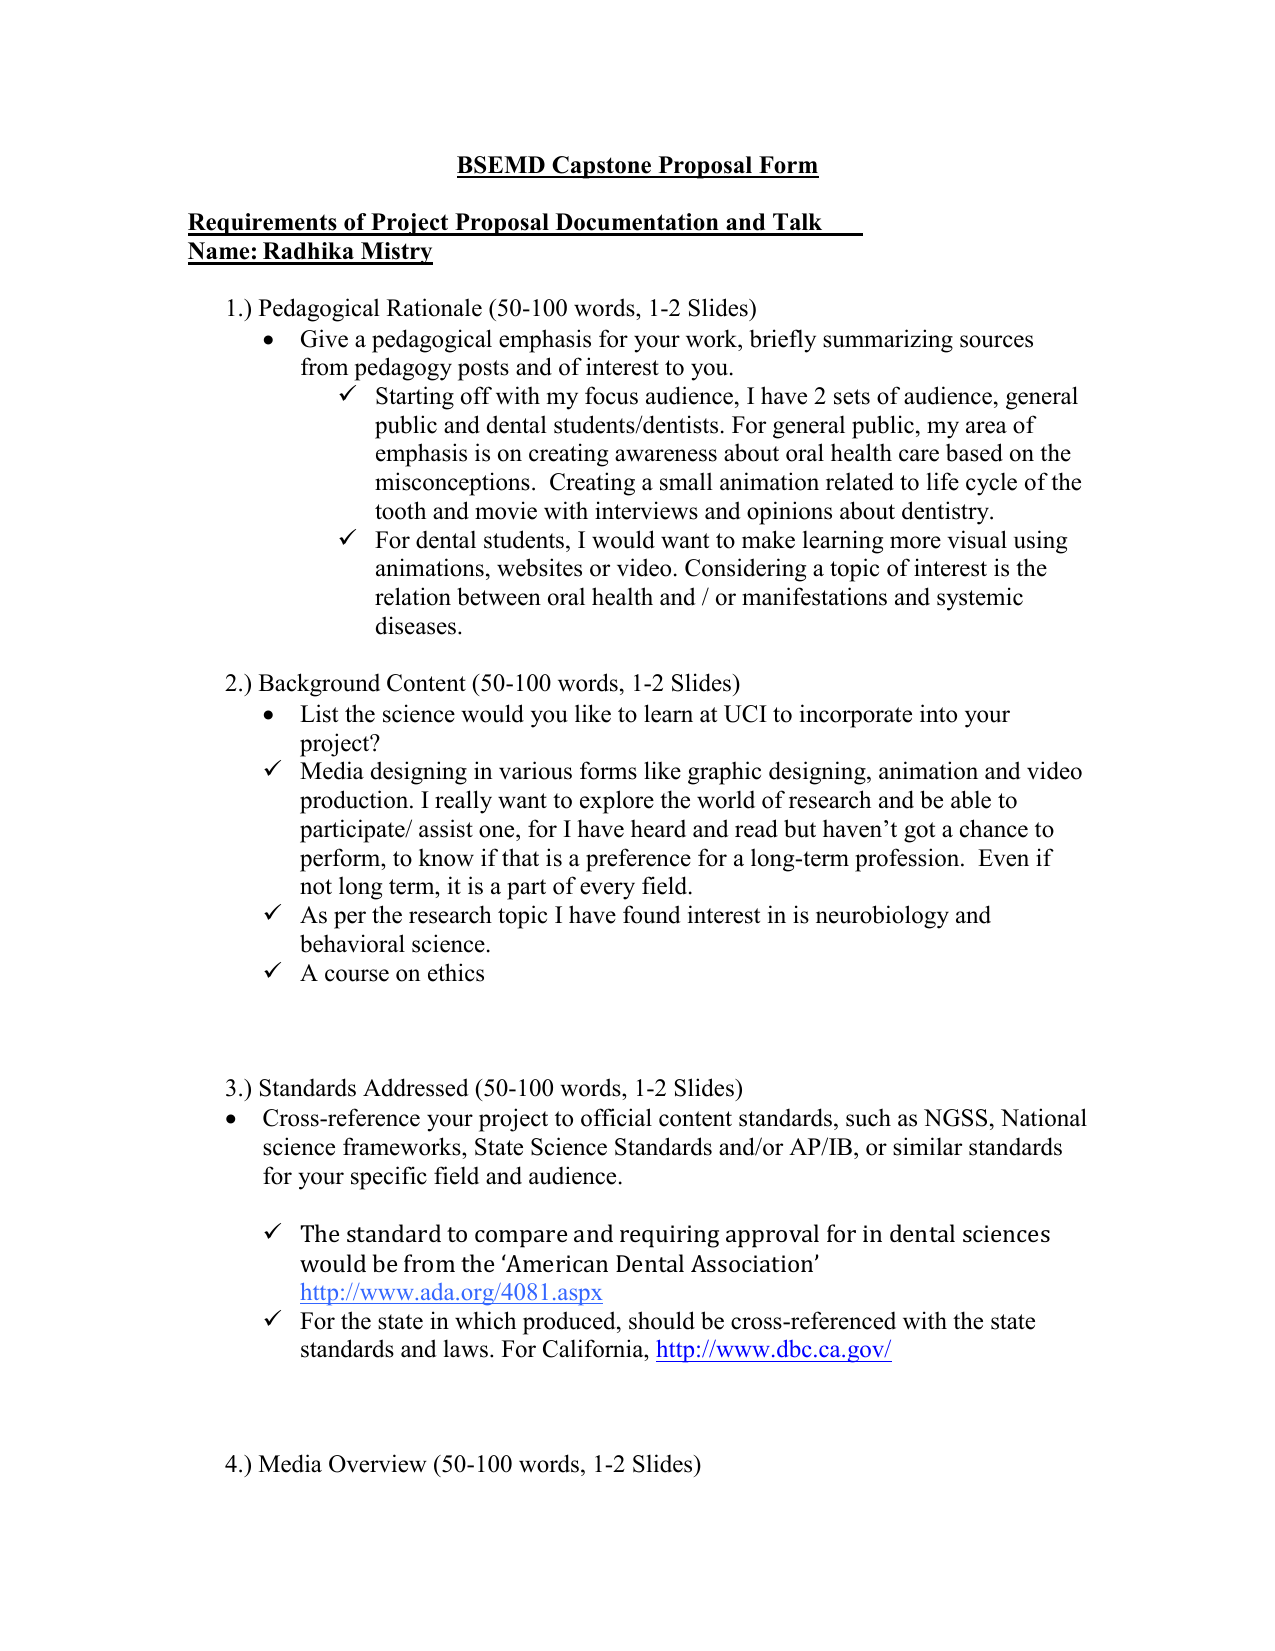 Hr assignments for mba